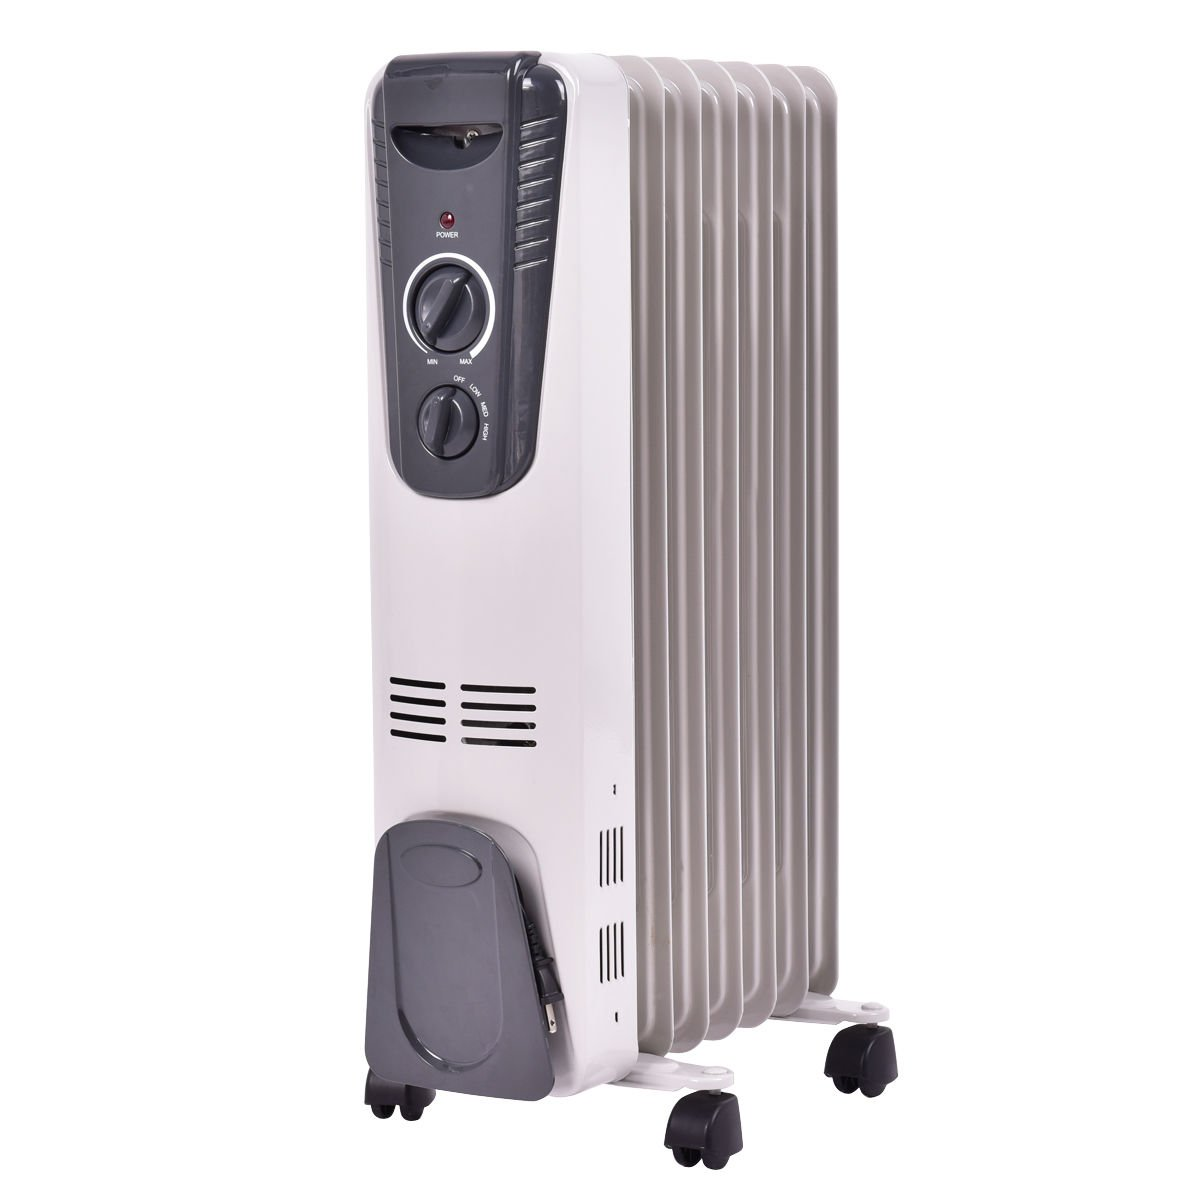 Amazon.com: Tangkula Electric Oil Filled Radiator Heater Portable ...